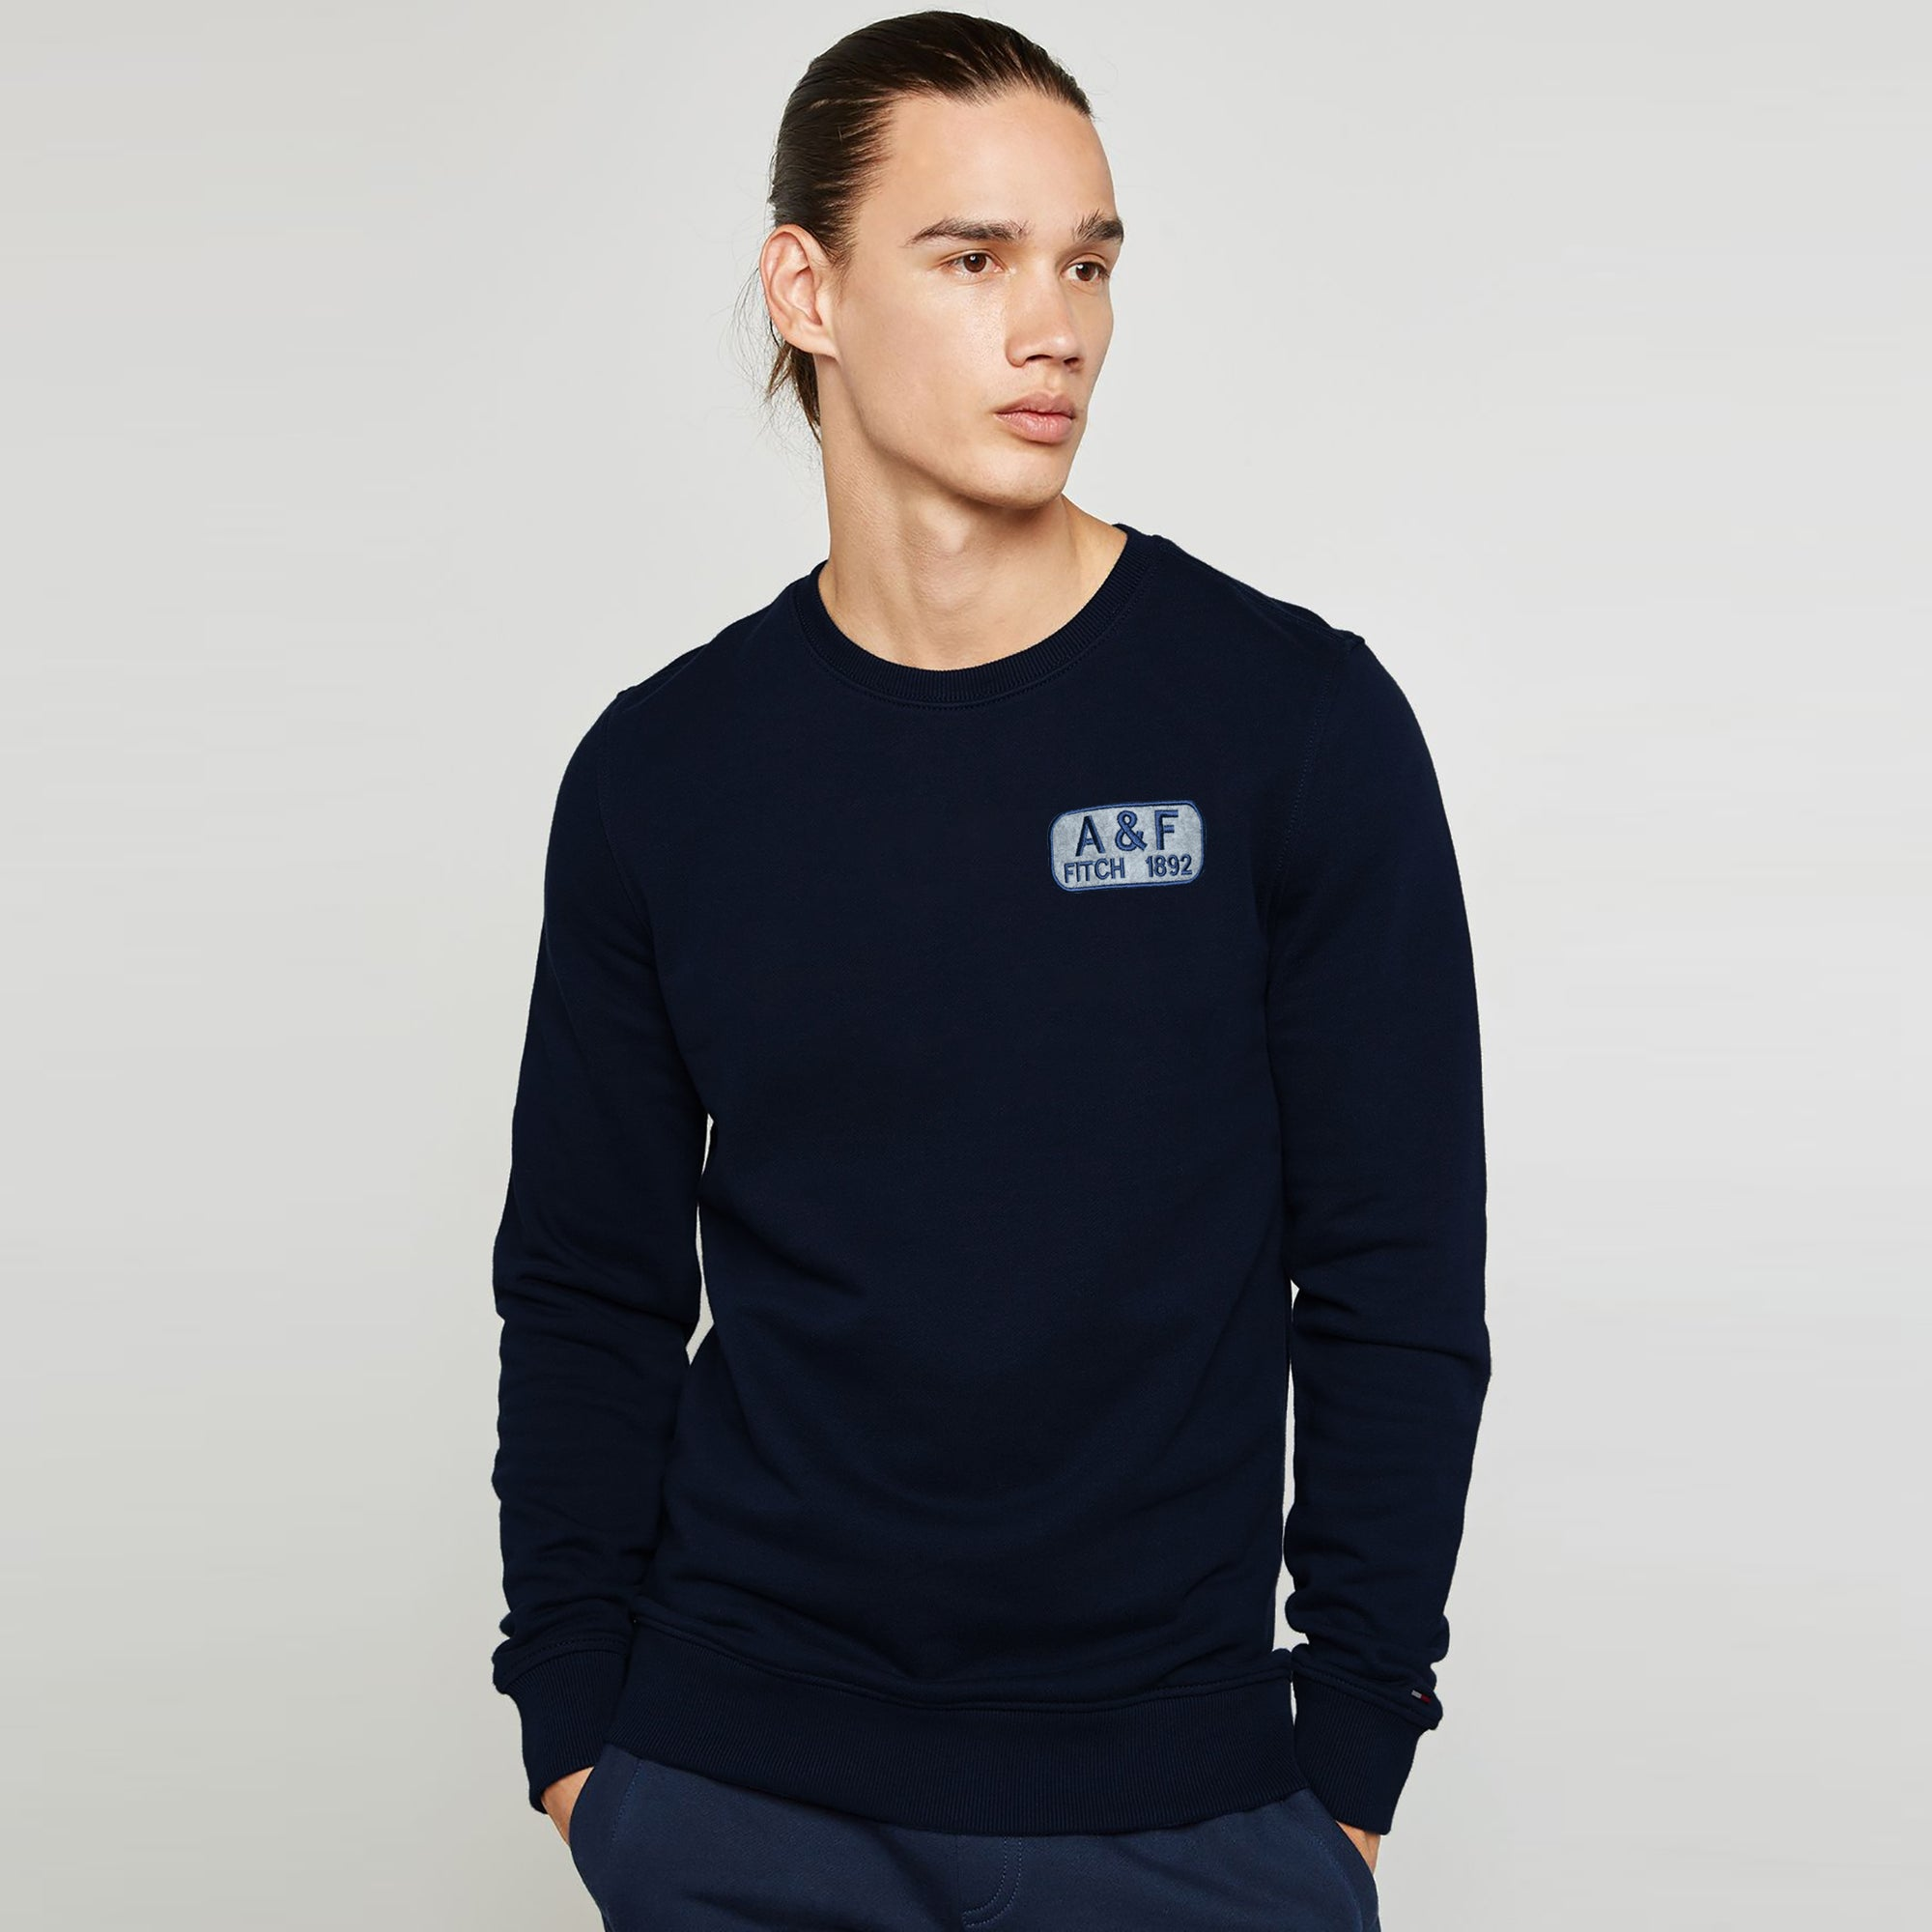 A&F Fleece Crew Neck Sweatshirt For Men-Dark Navy-BE6685